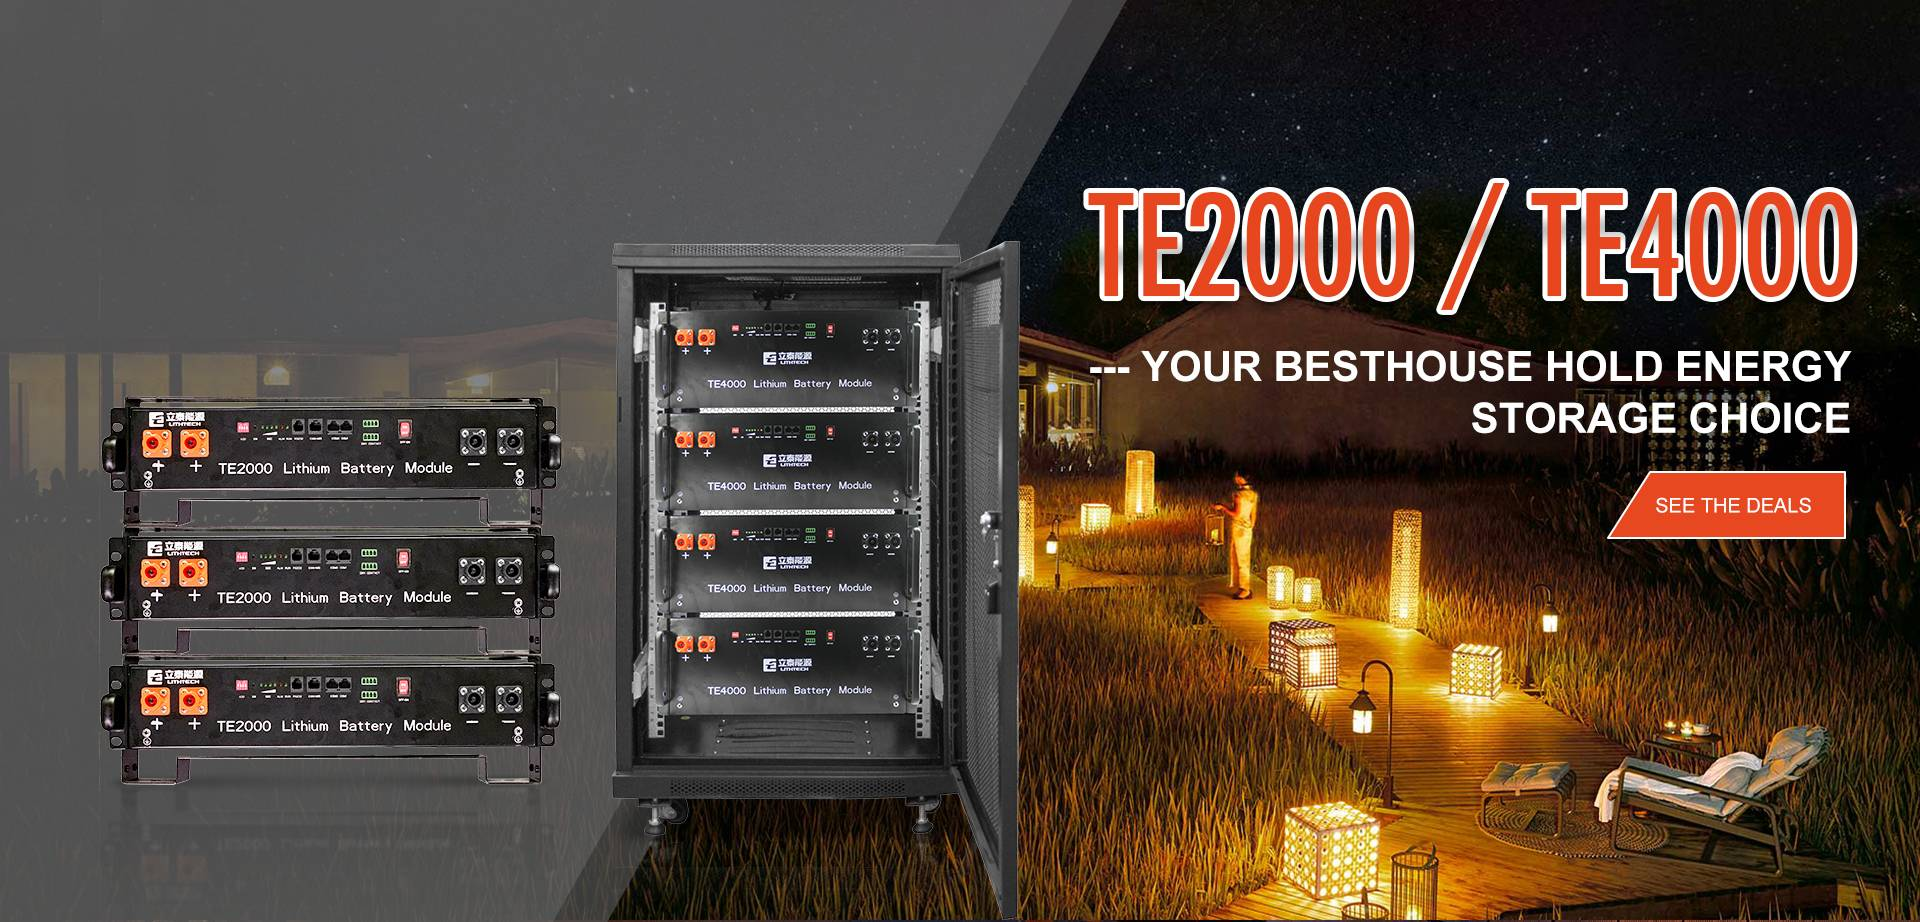 LLithtech TE4000 48V 100Ah ESS Battery Energy Storage System Lifepo4 Battery